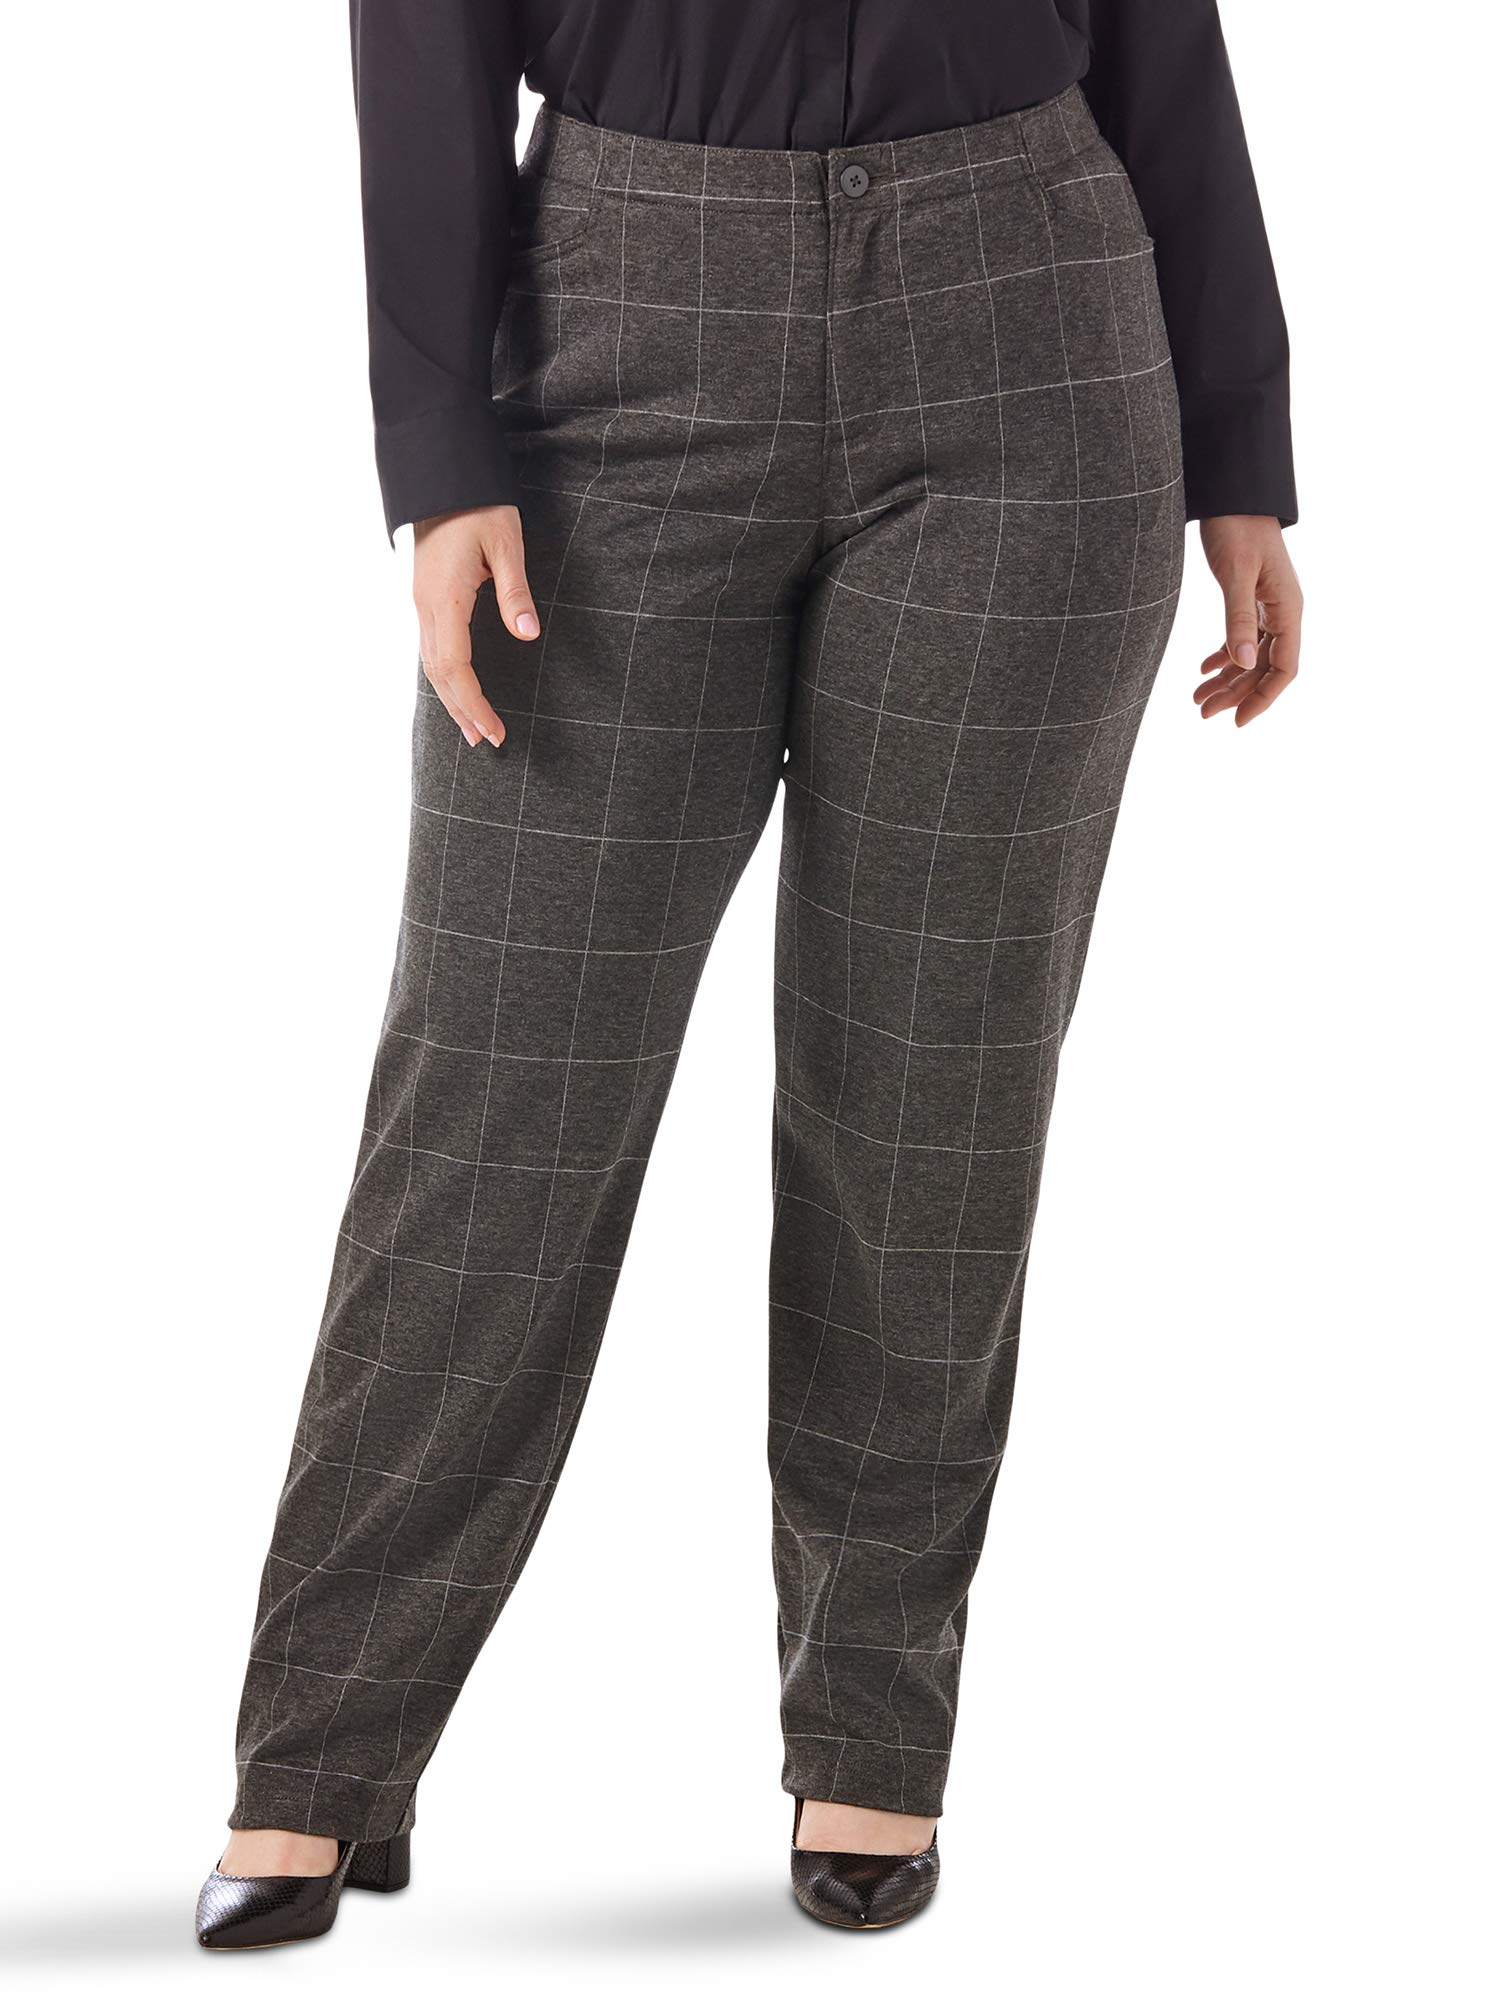 Riders by Lee Indigo Women's Plus Size Comfort Collection Knit L Pocket Pant, Grey/white windowpane, 18W Petite by Riders by Lee Indigo